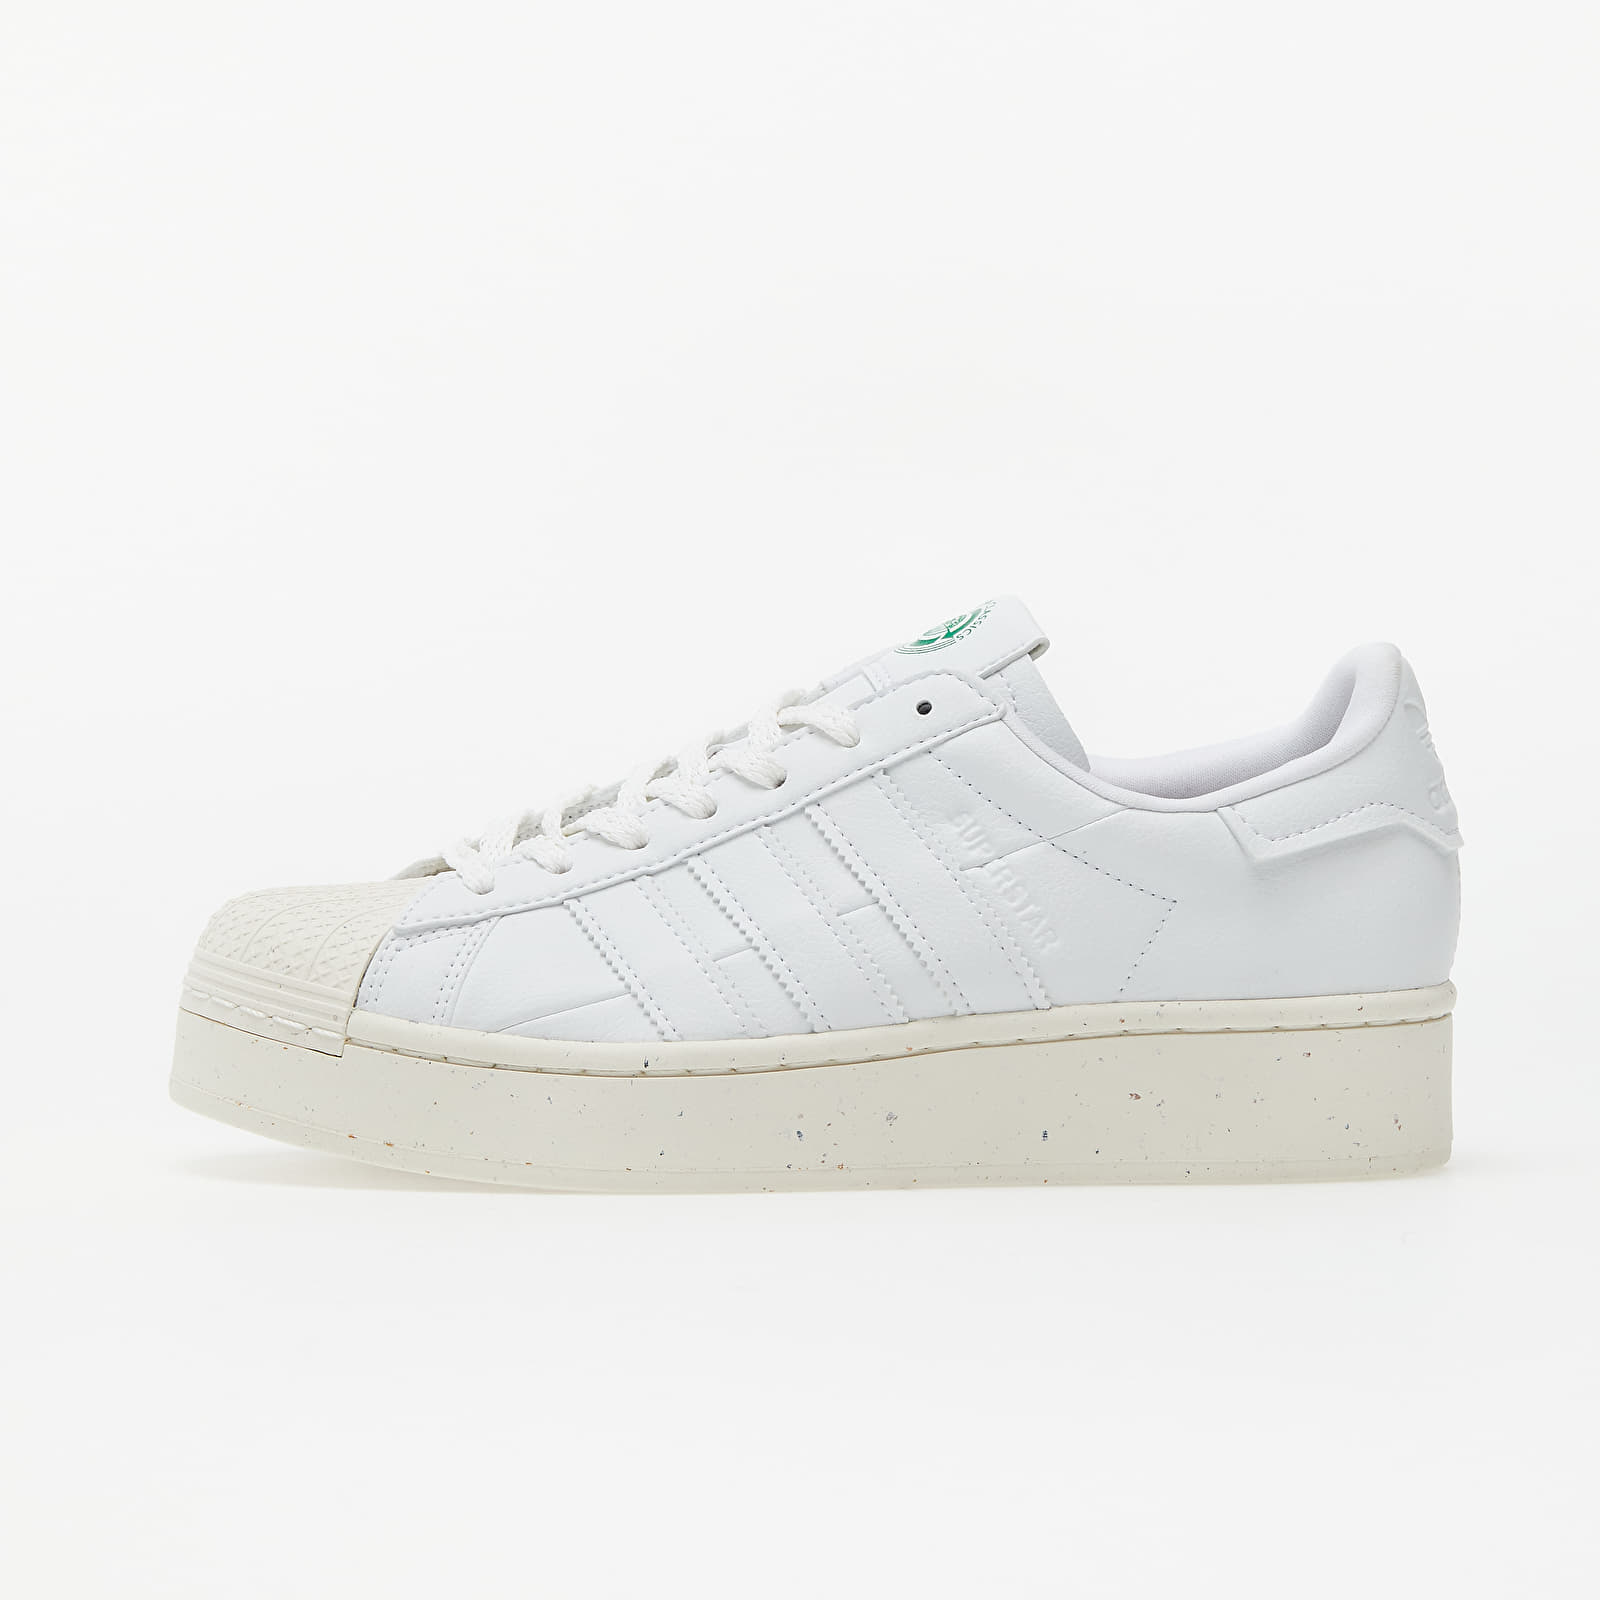 adidas Superstar Bold W Clean Classics Ftw White/ Ftw White/ Off White EUR 41 1/3